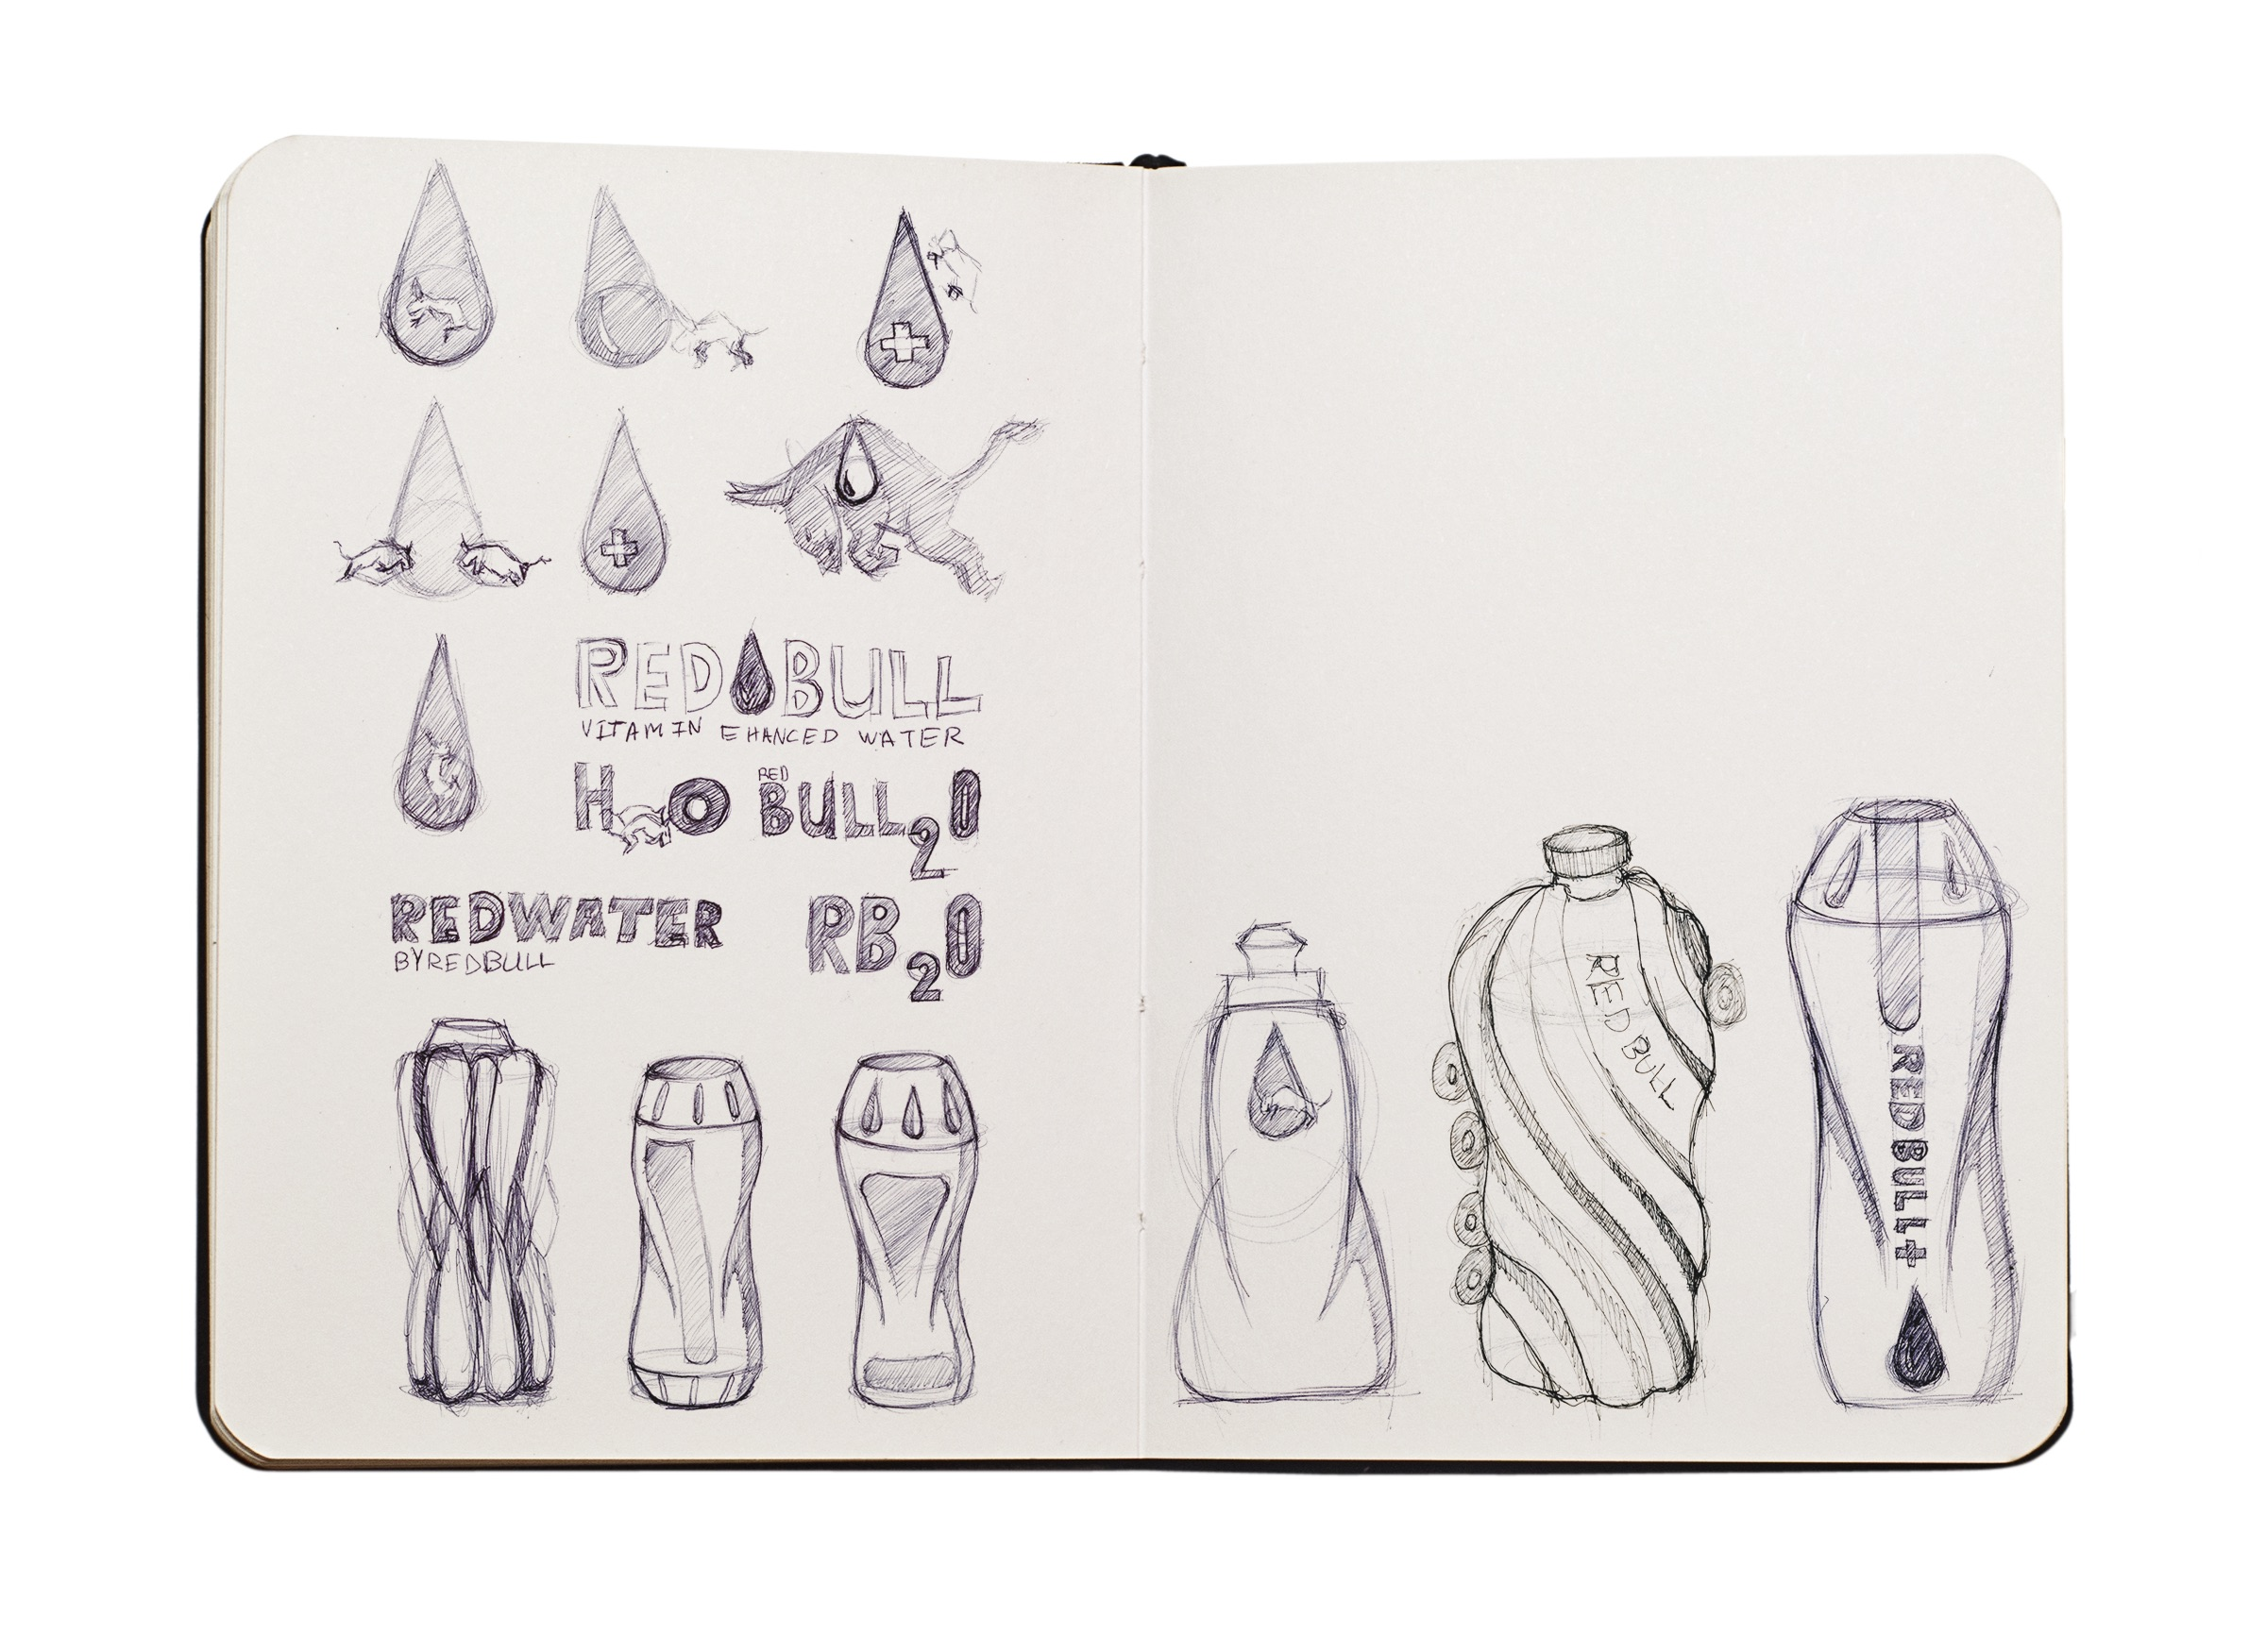 Some of the ideation sketches for the Bottle.